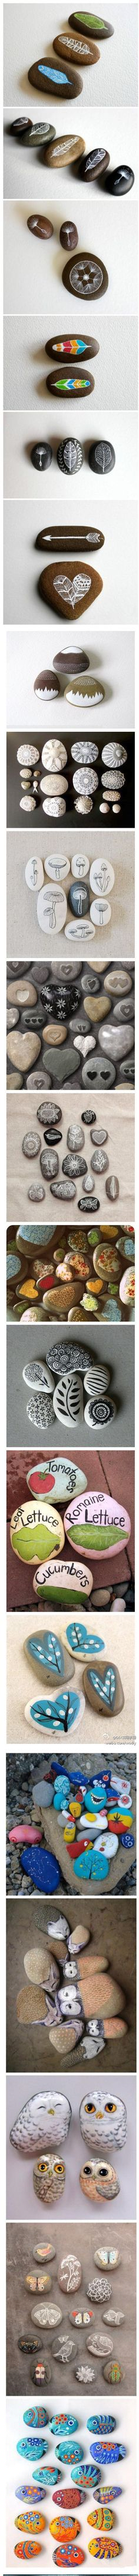 pebble art creative designs.